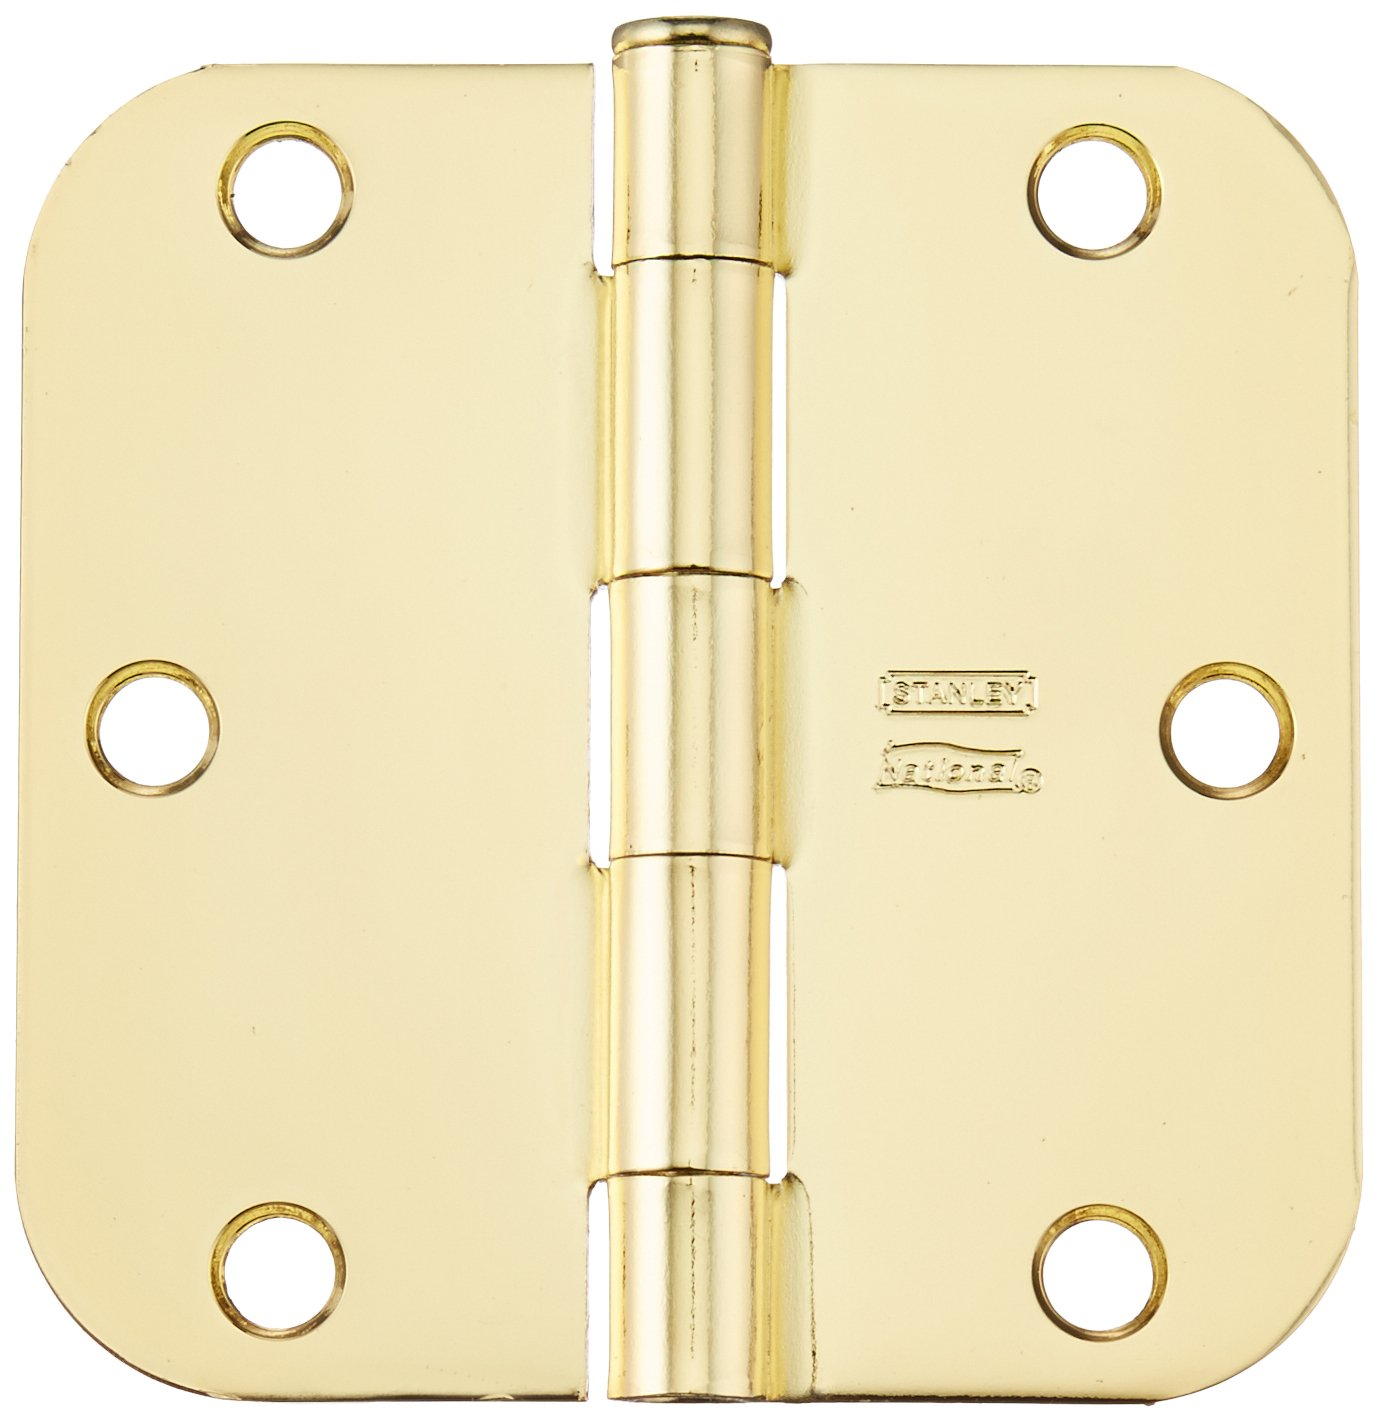 Stanley Hardware S082-482 RD758 Residential Hinge in Bright Brass 2 Pack